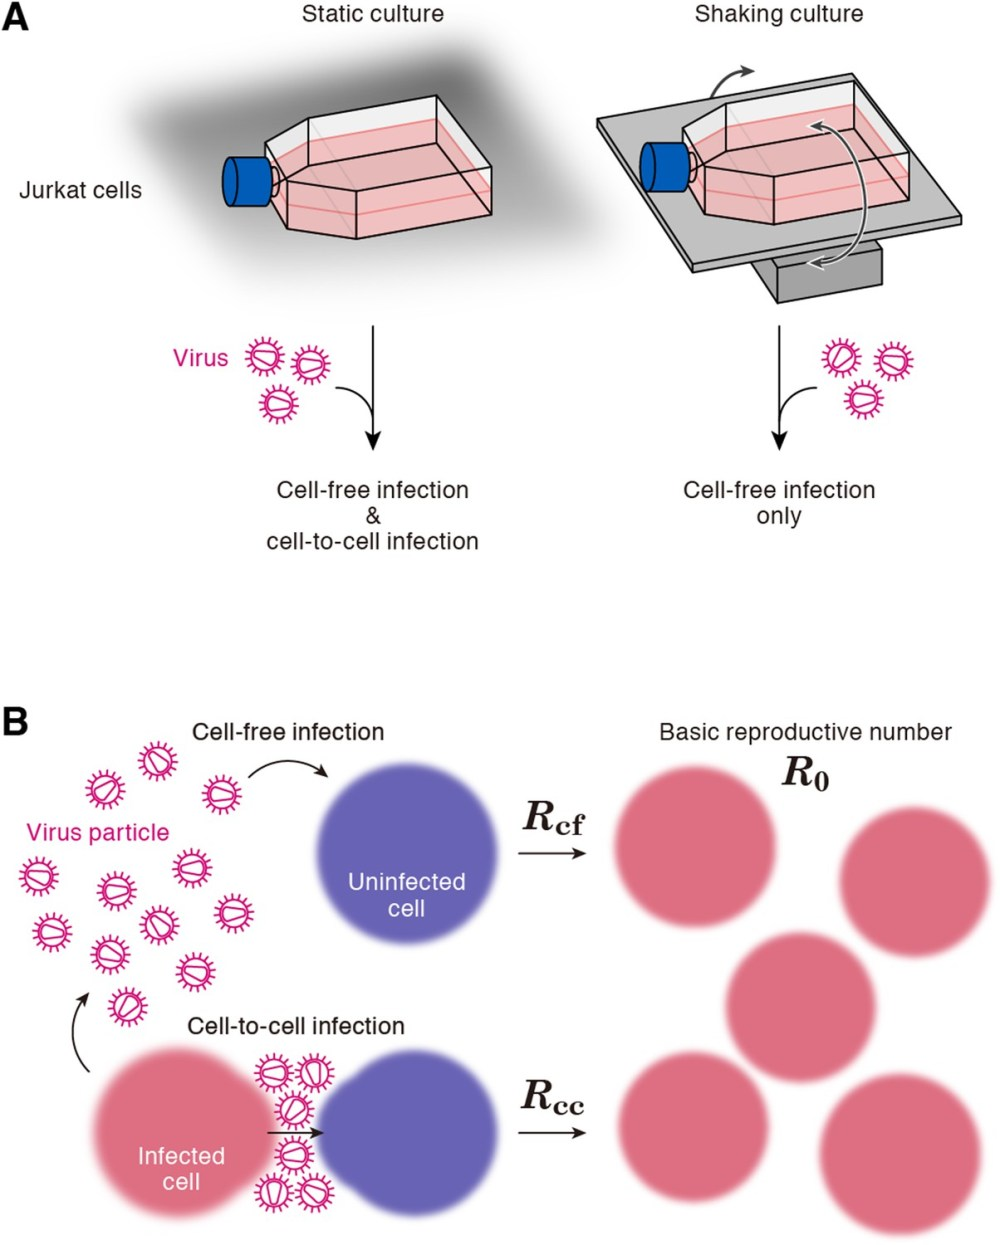 medium resolution of cell culture systems and the basic reproduction number under cell to cell and cell free infection